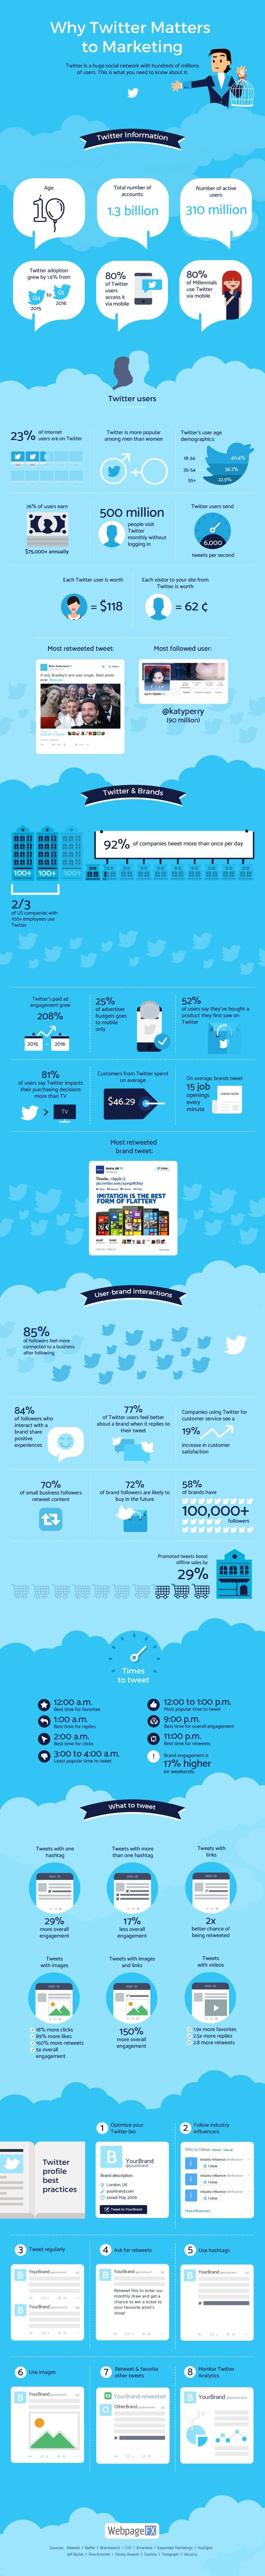 Twitter users are mobile, international and highly engaged with brands.